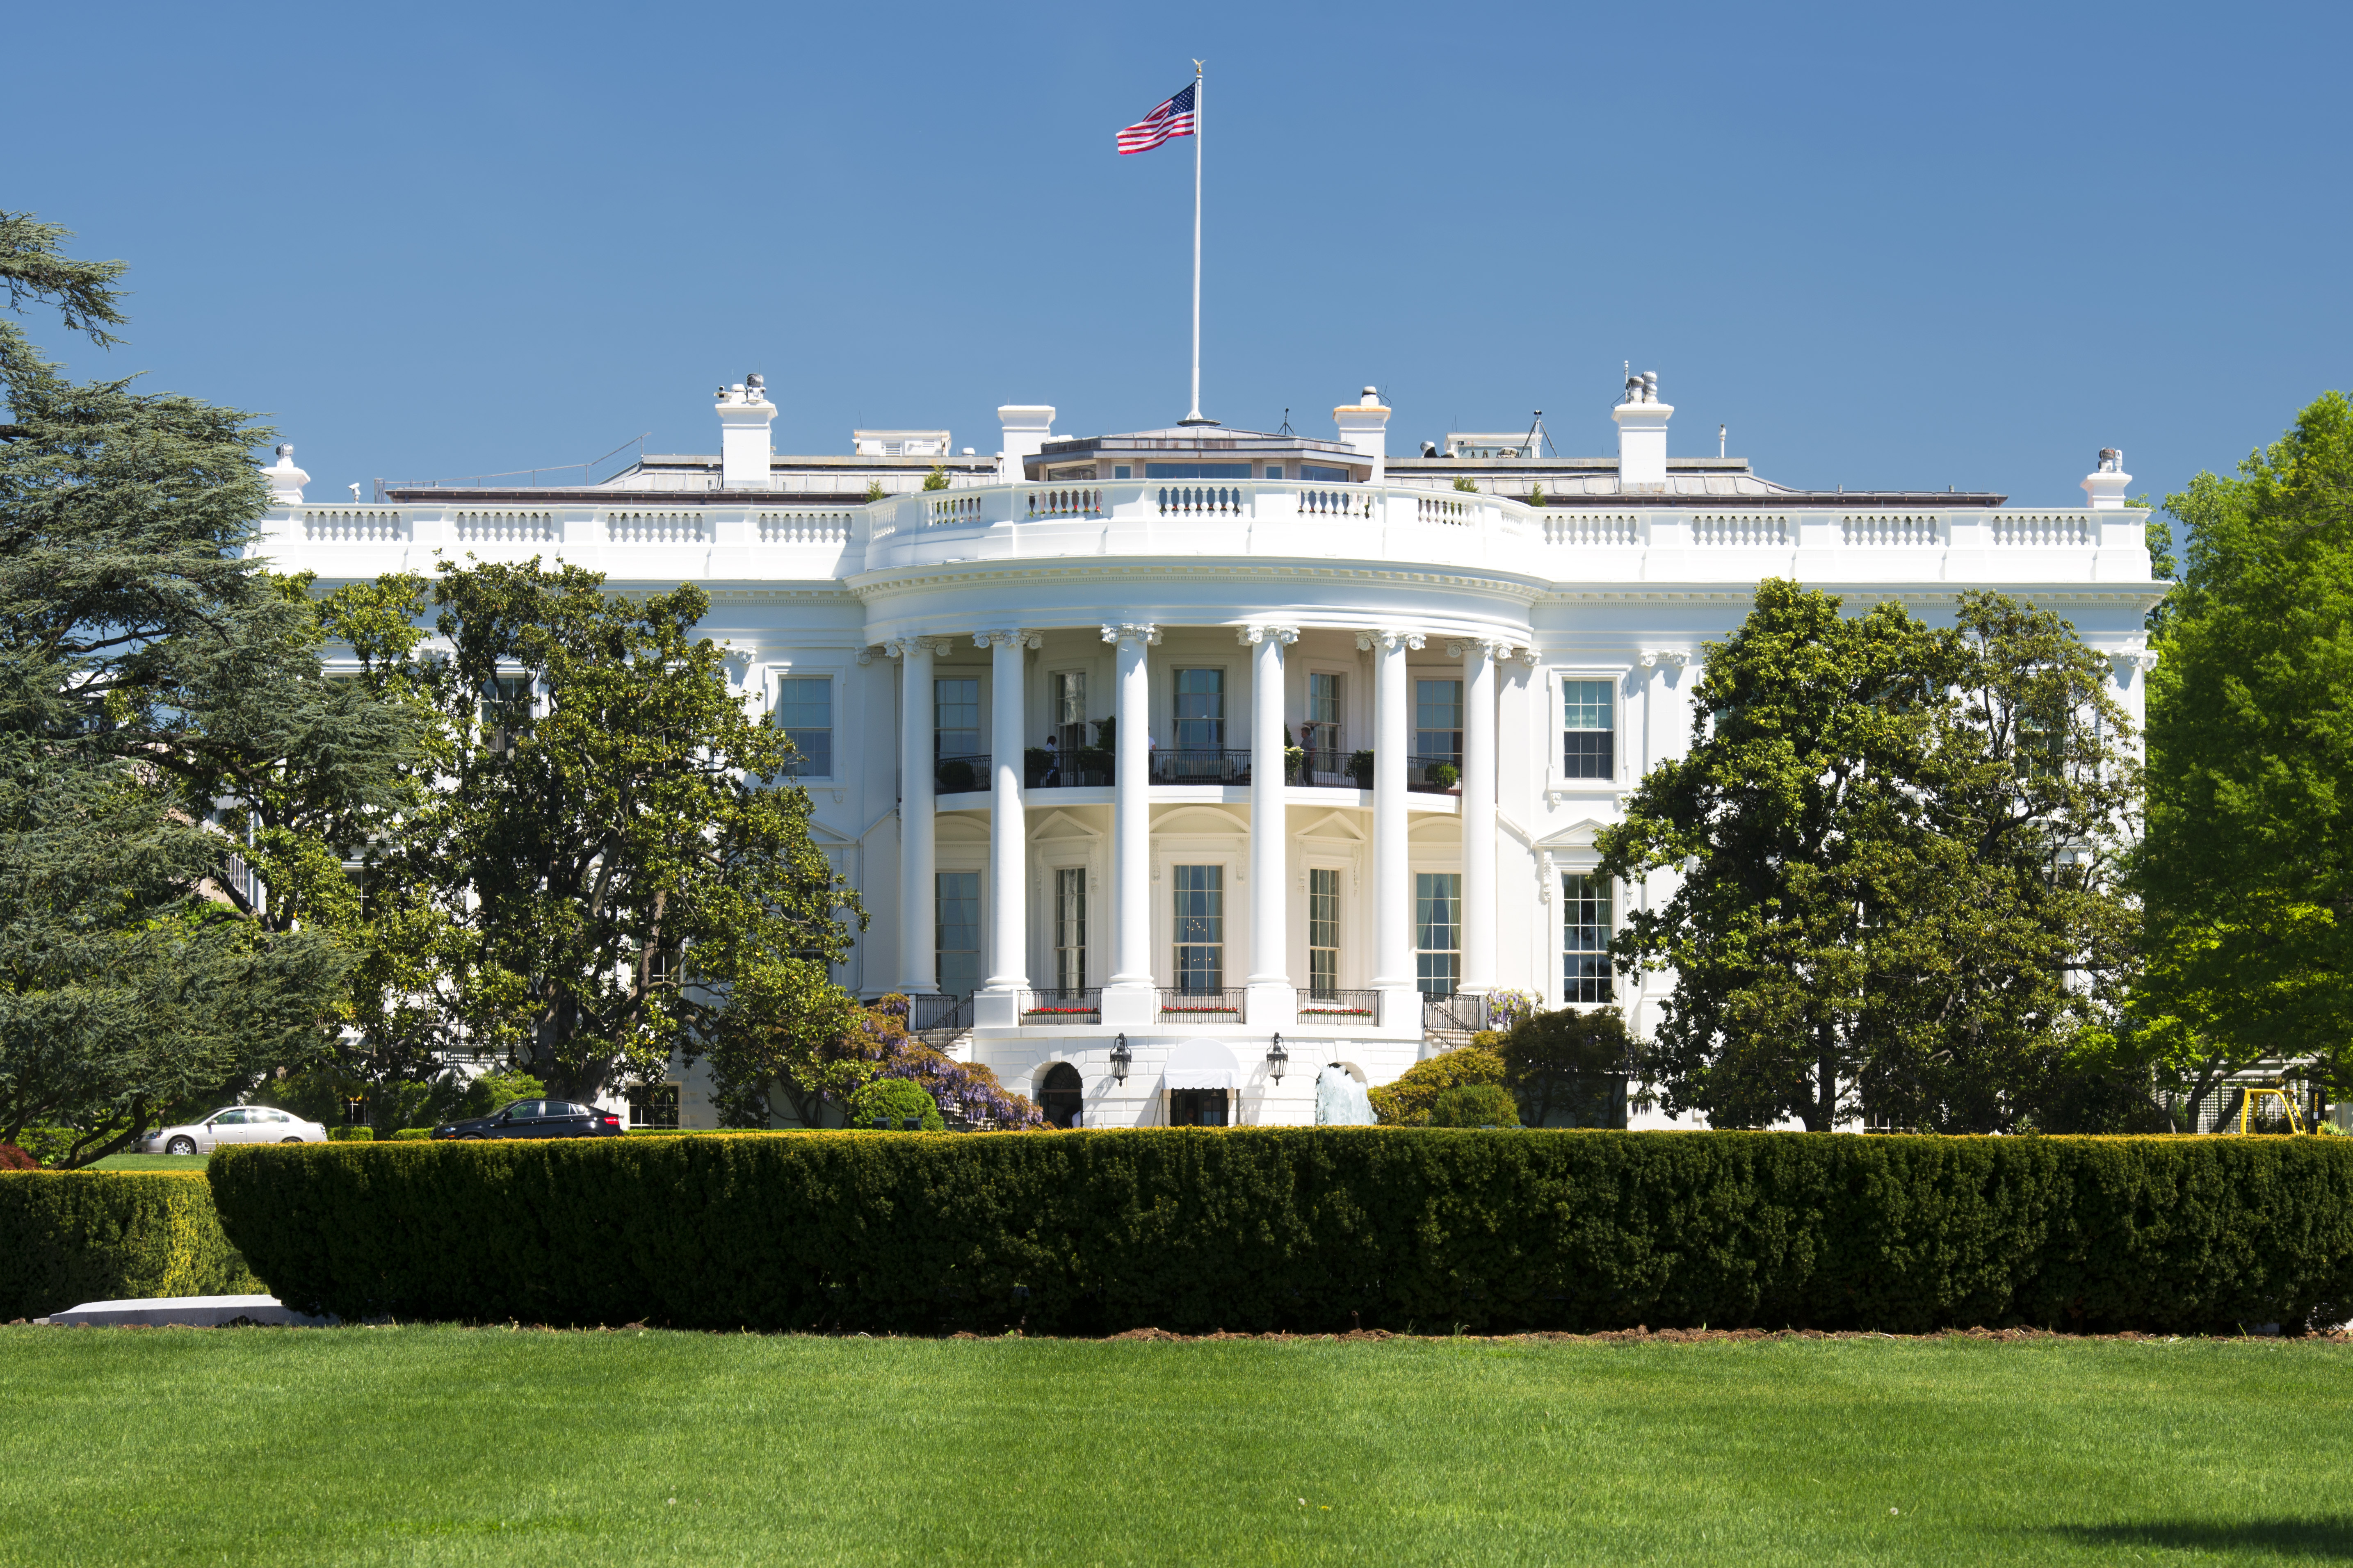 The White House is framed by a deep blue sky. Shutterstock image via Andrea Izzotti